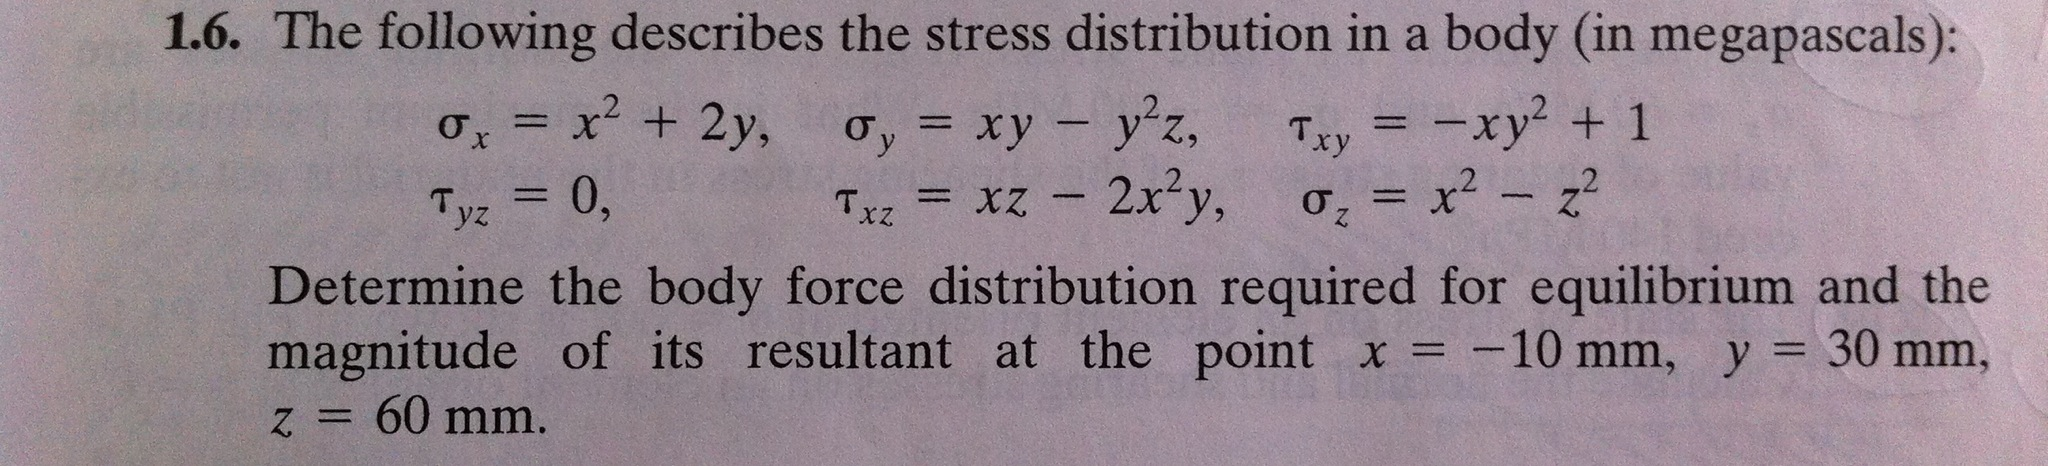 The following describes the stress distribution in